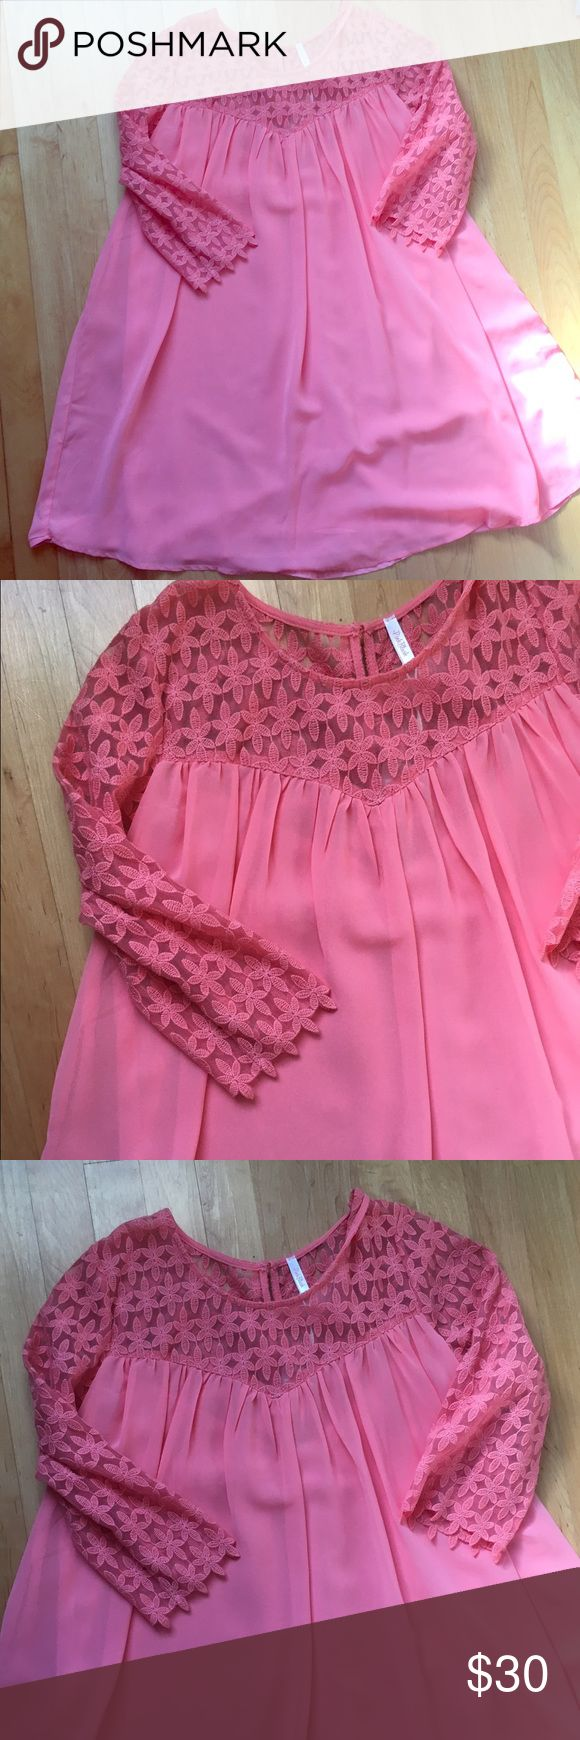 Pink Blush maternity tunic Beautiful feminine Pink Blush maternity tunic. Could be worn as a dress too. Lined sheer material with pretty floral cut out details. Pink Blush Tops Tunics